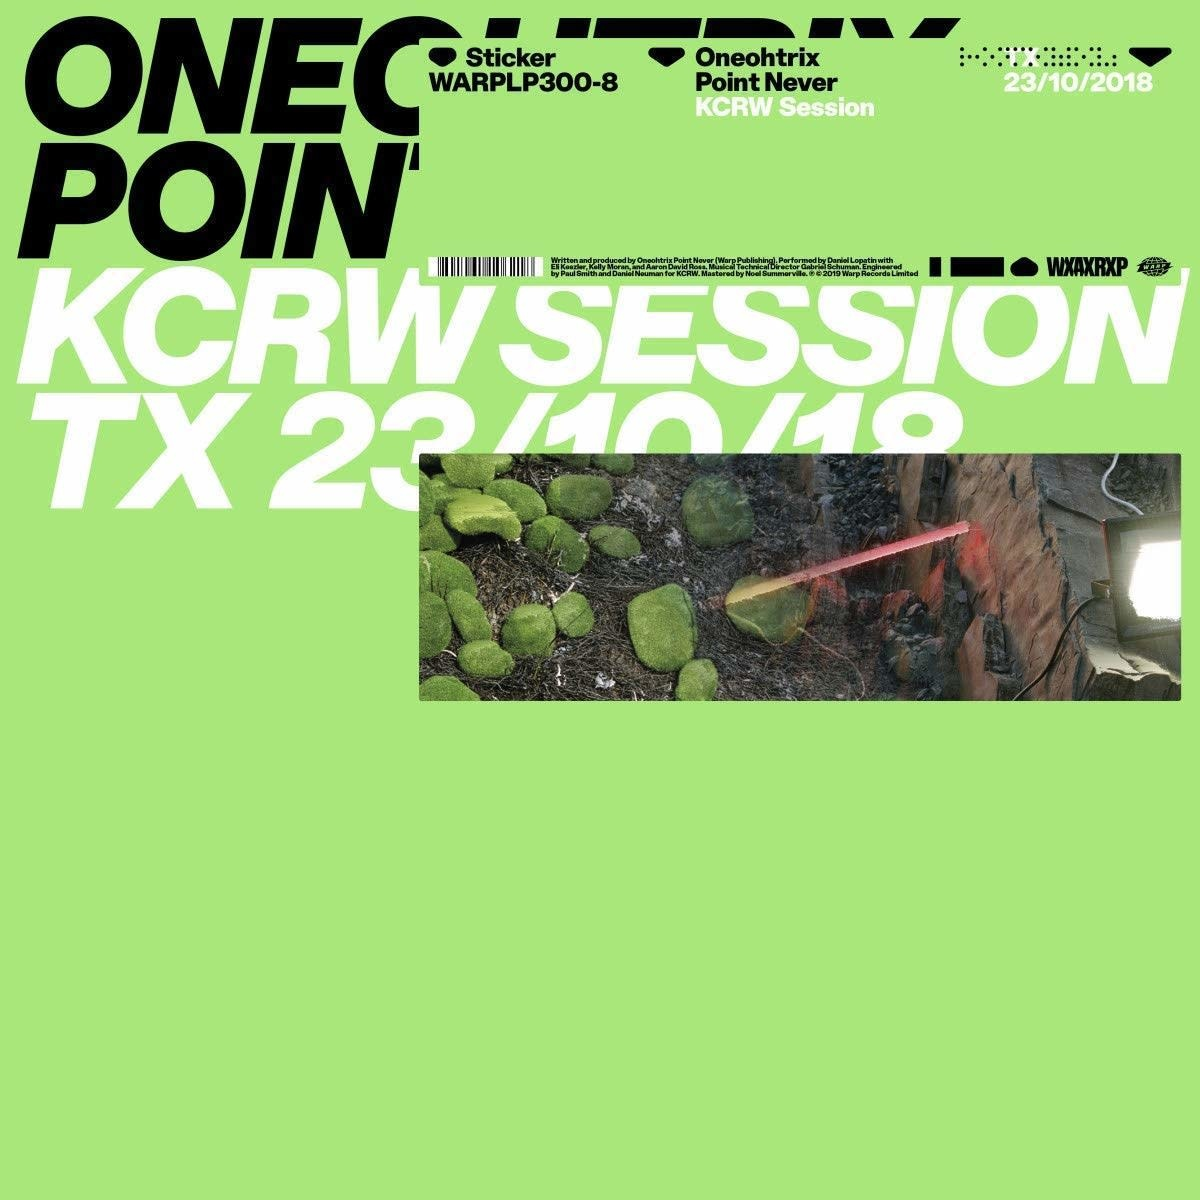 Oneohtrix Point Never - KCRW Session TX 23/10/18